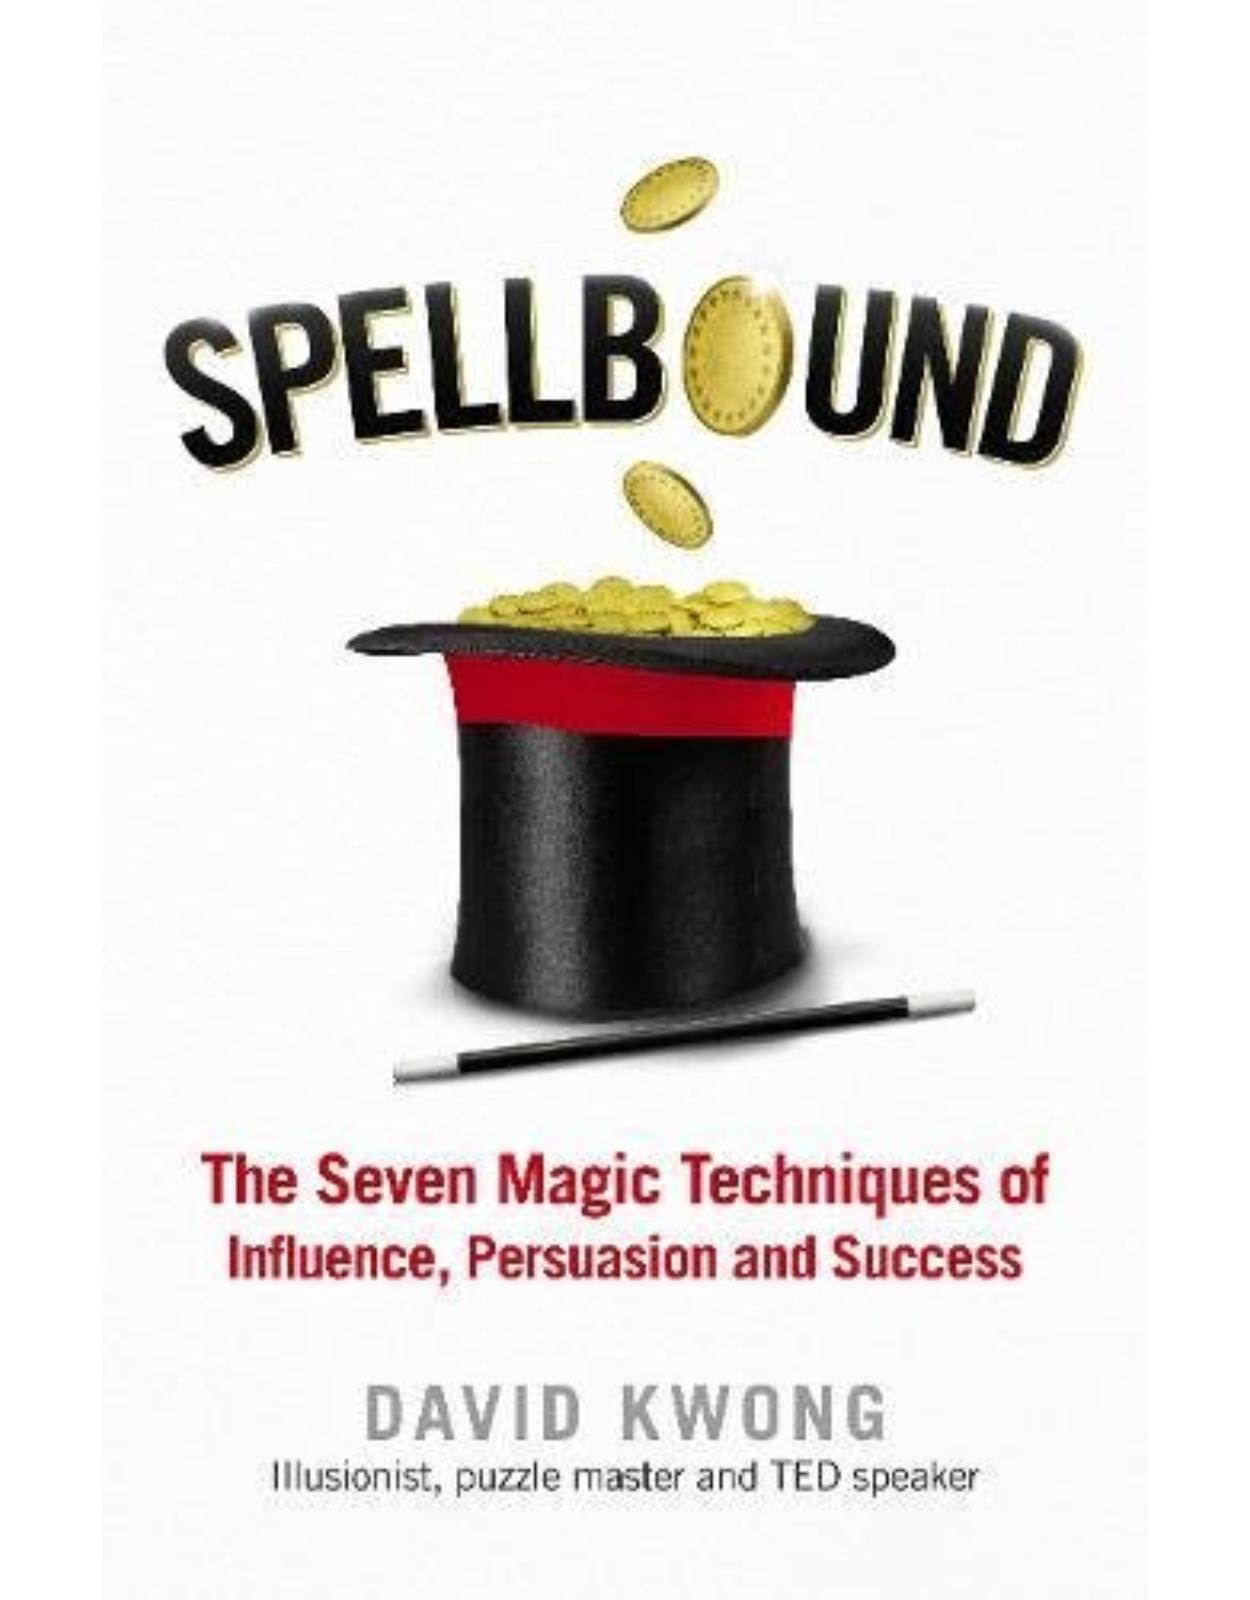 Spellbound: The Seven Magic Techniques of Influence, Persuasion and Success